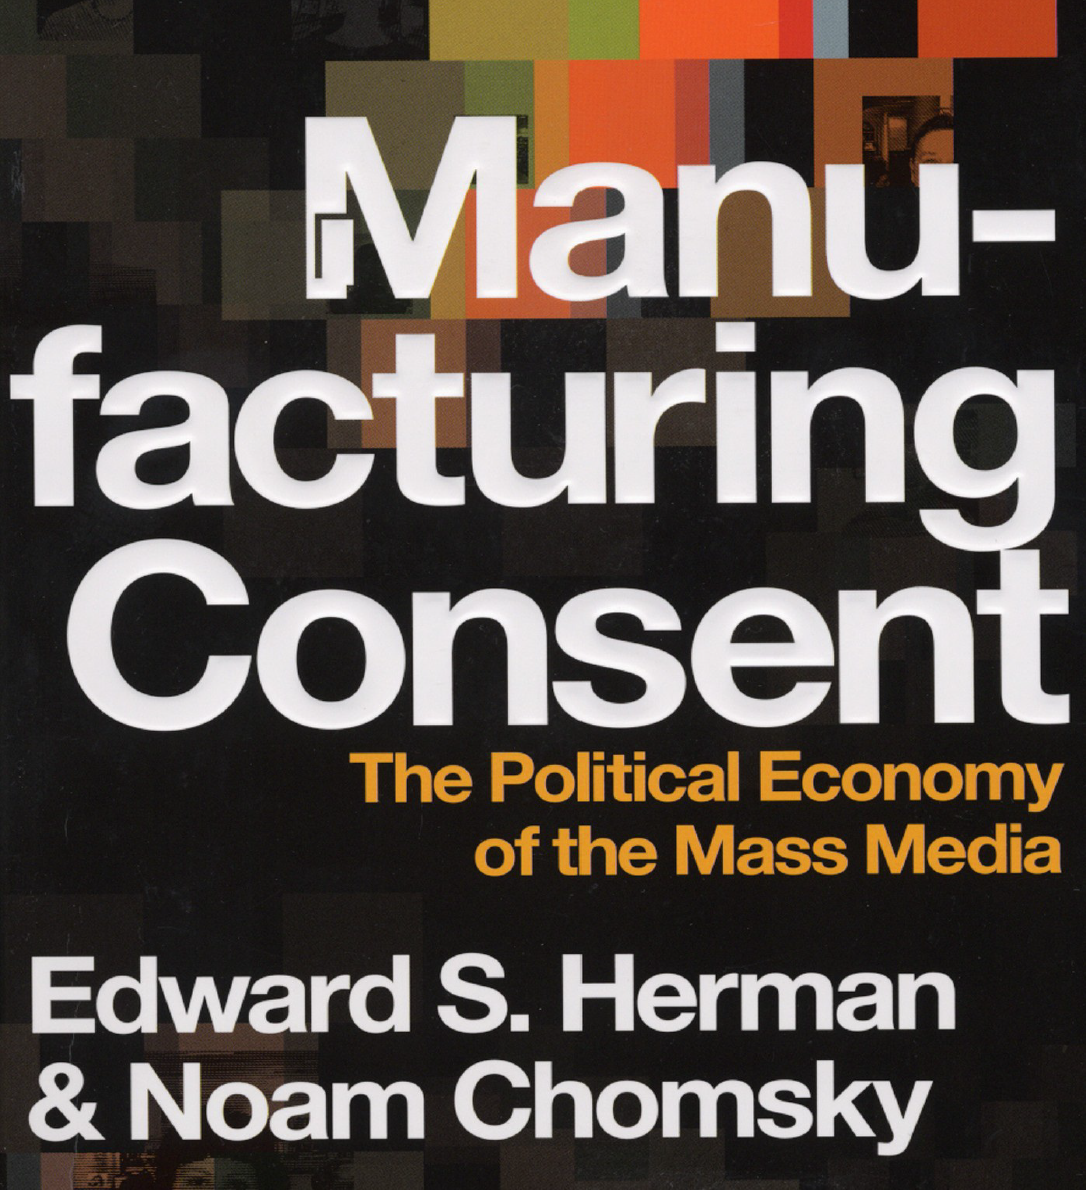 MEND Book Club Reads Manufacturing Consent